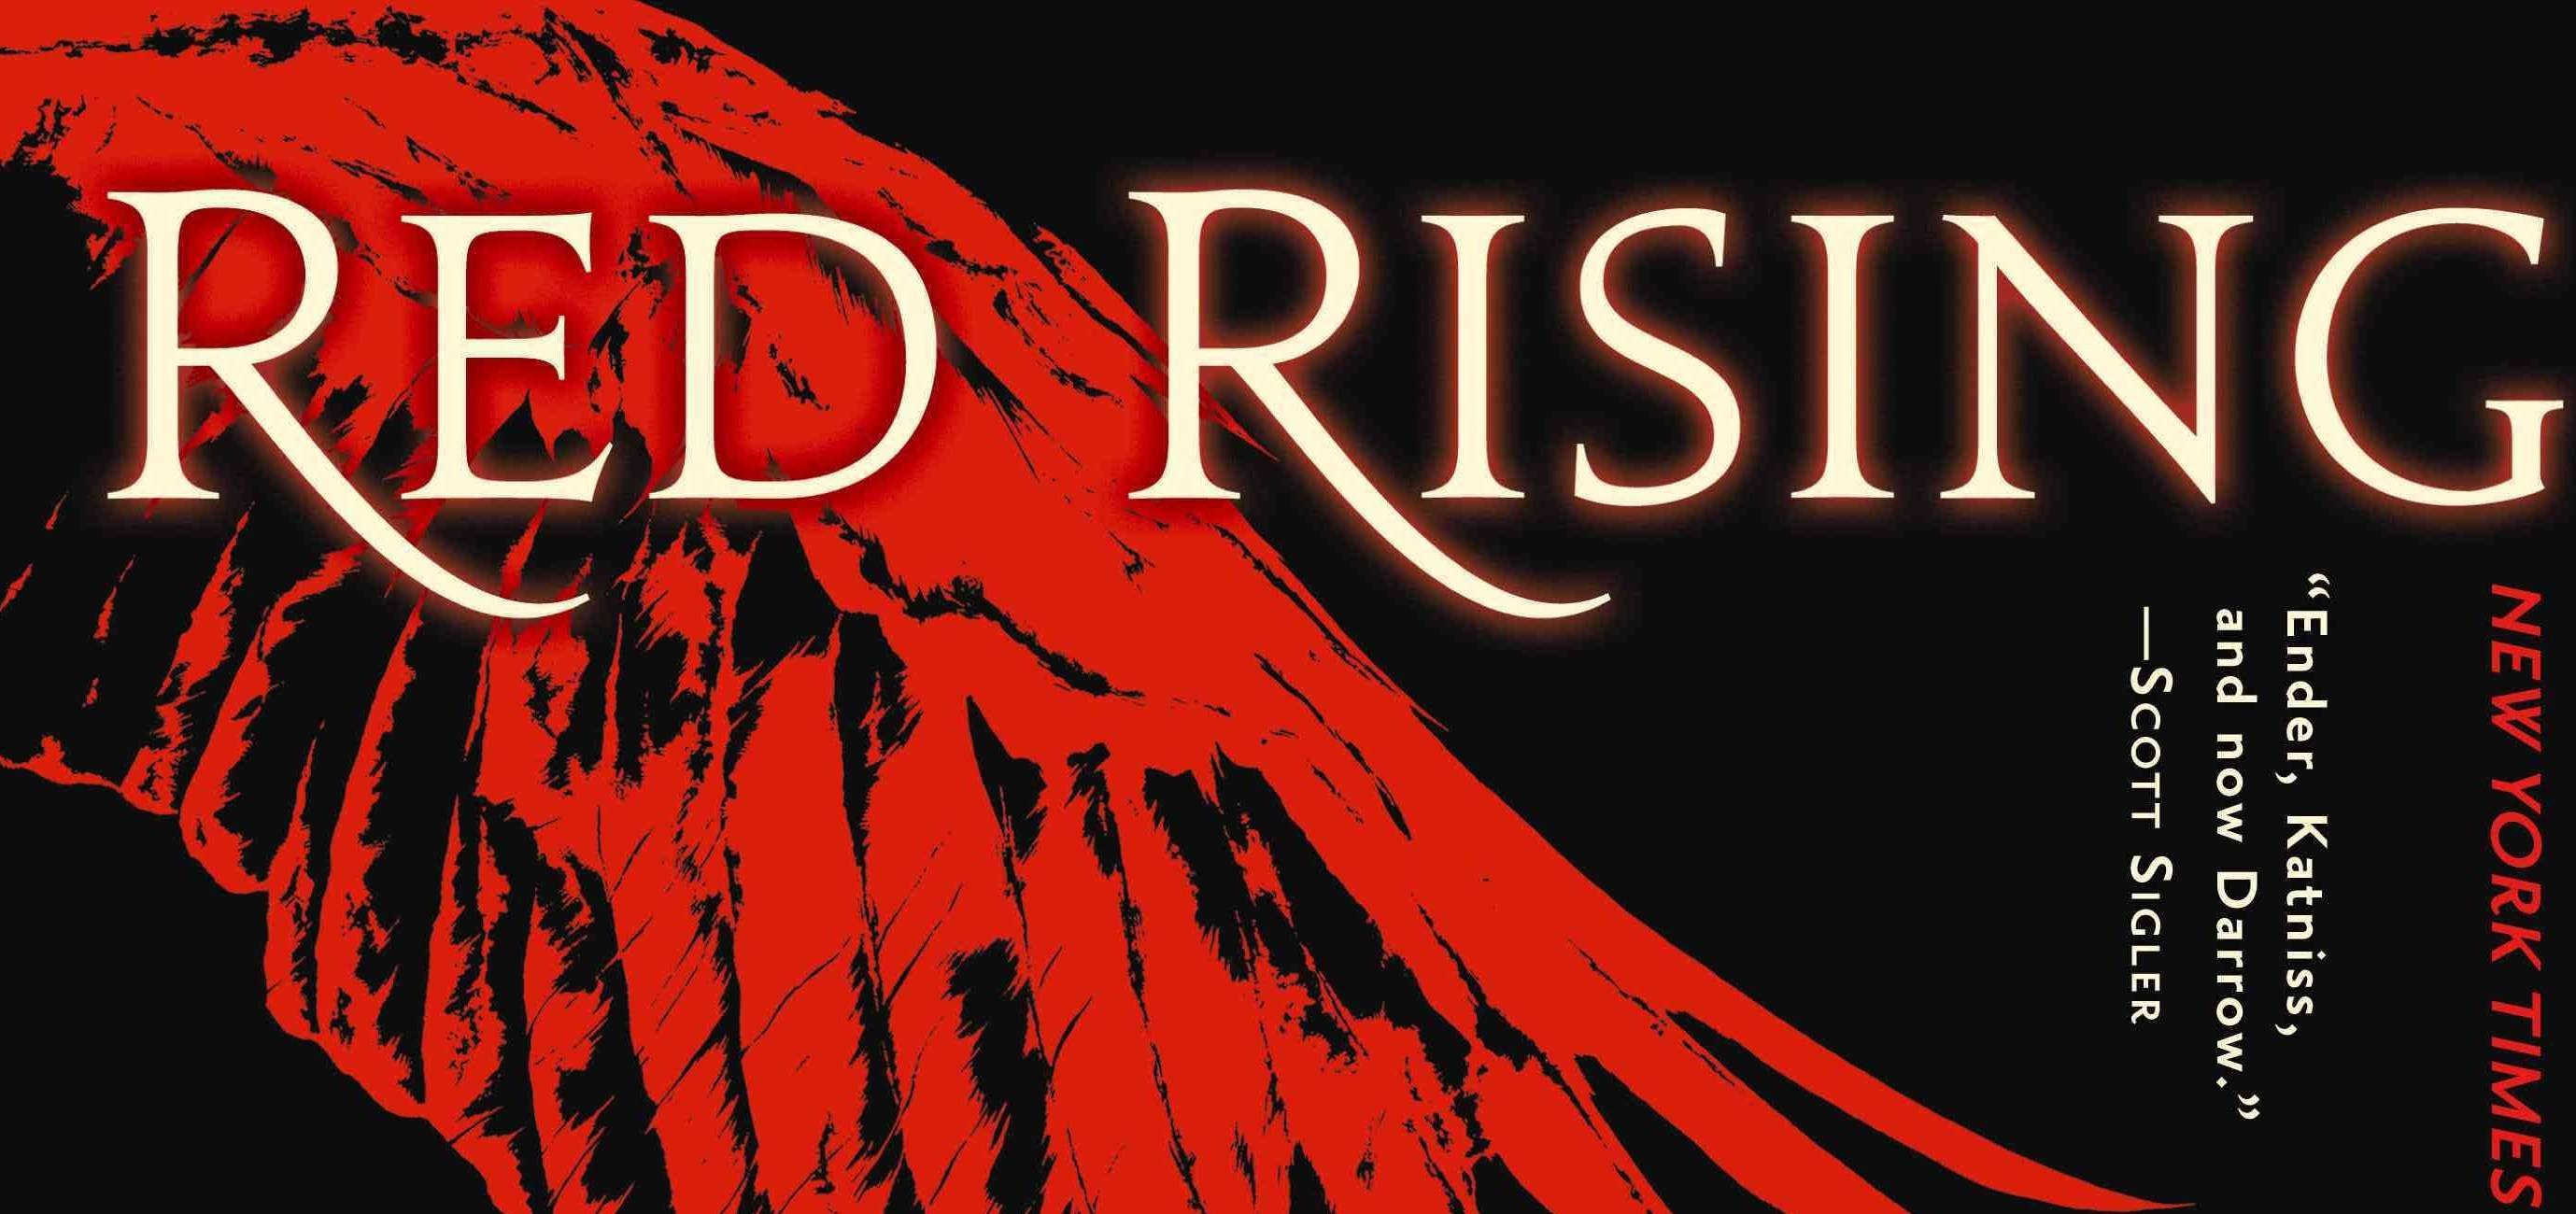 morning star the red rising series book 3